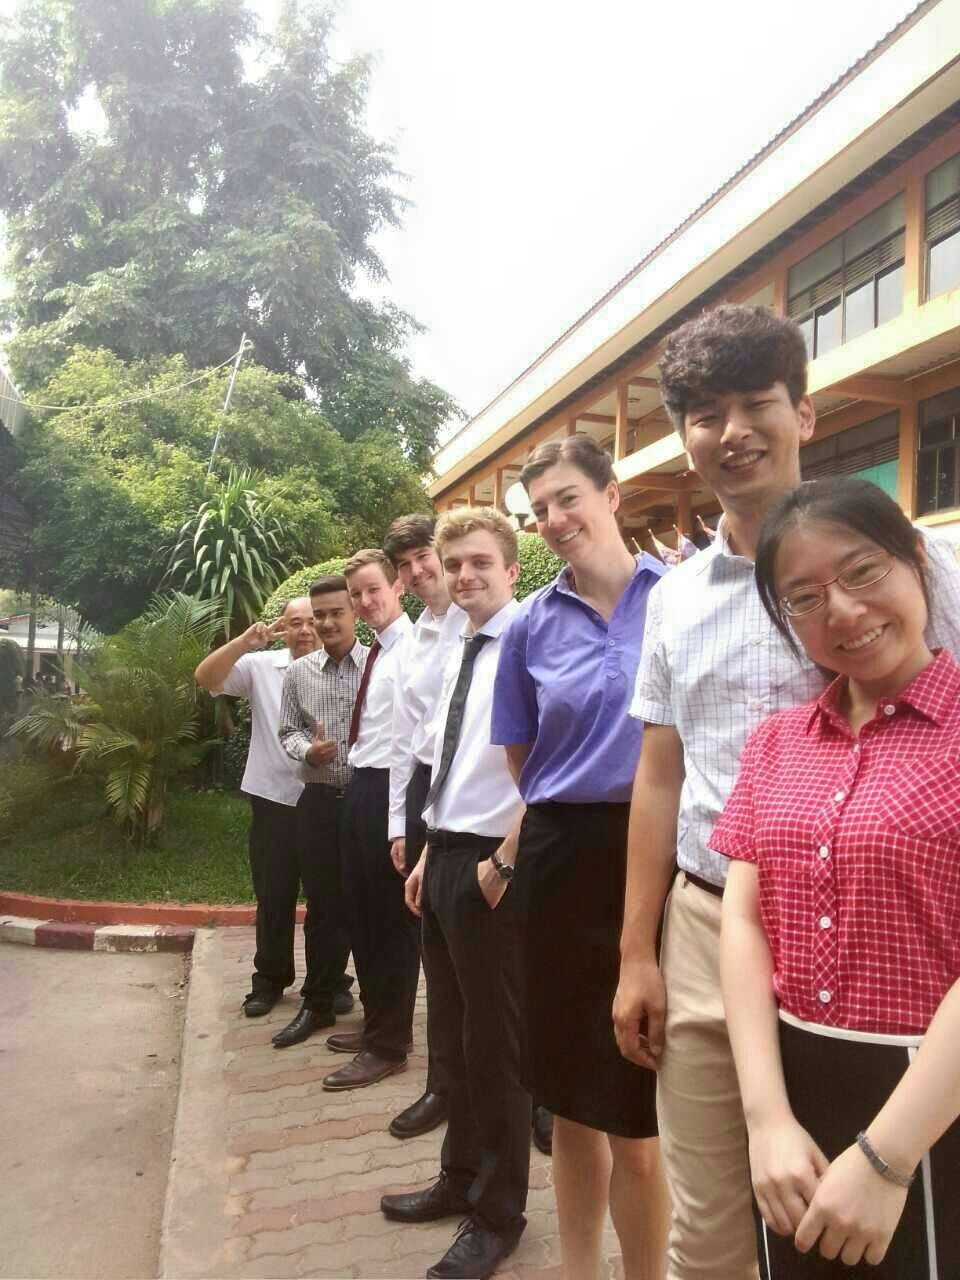 foreign teachers Thailand professional attire